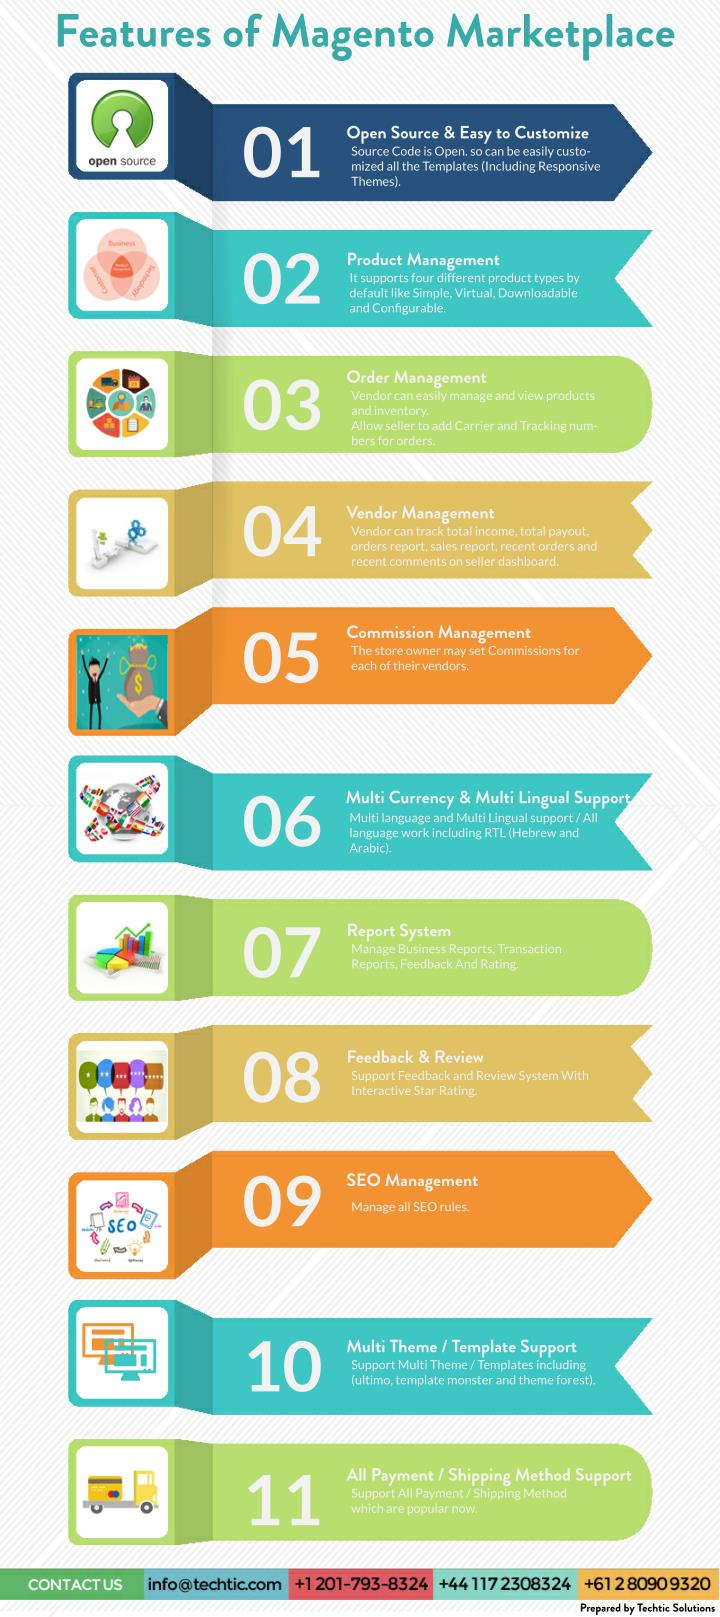 Features of Magento Marketplace